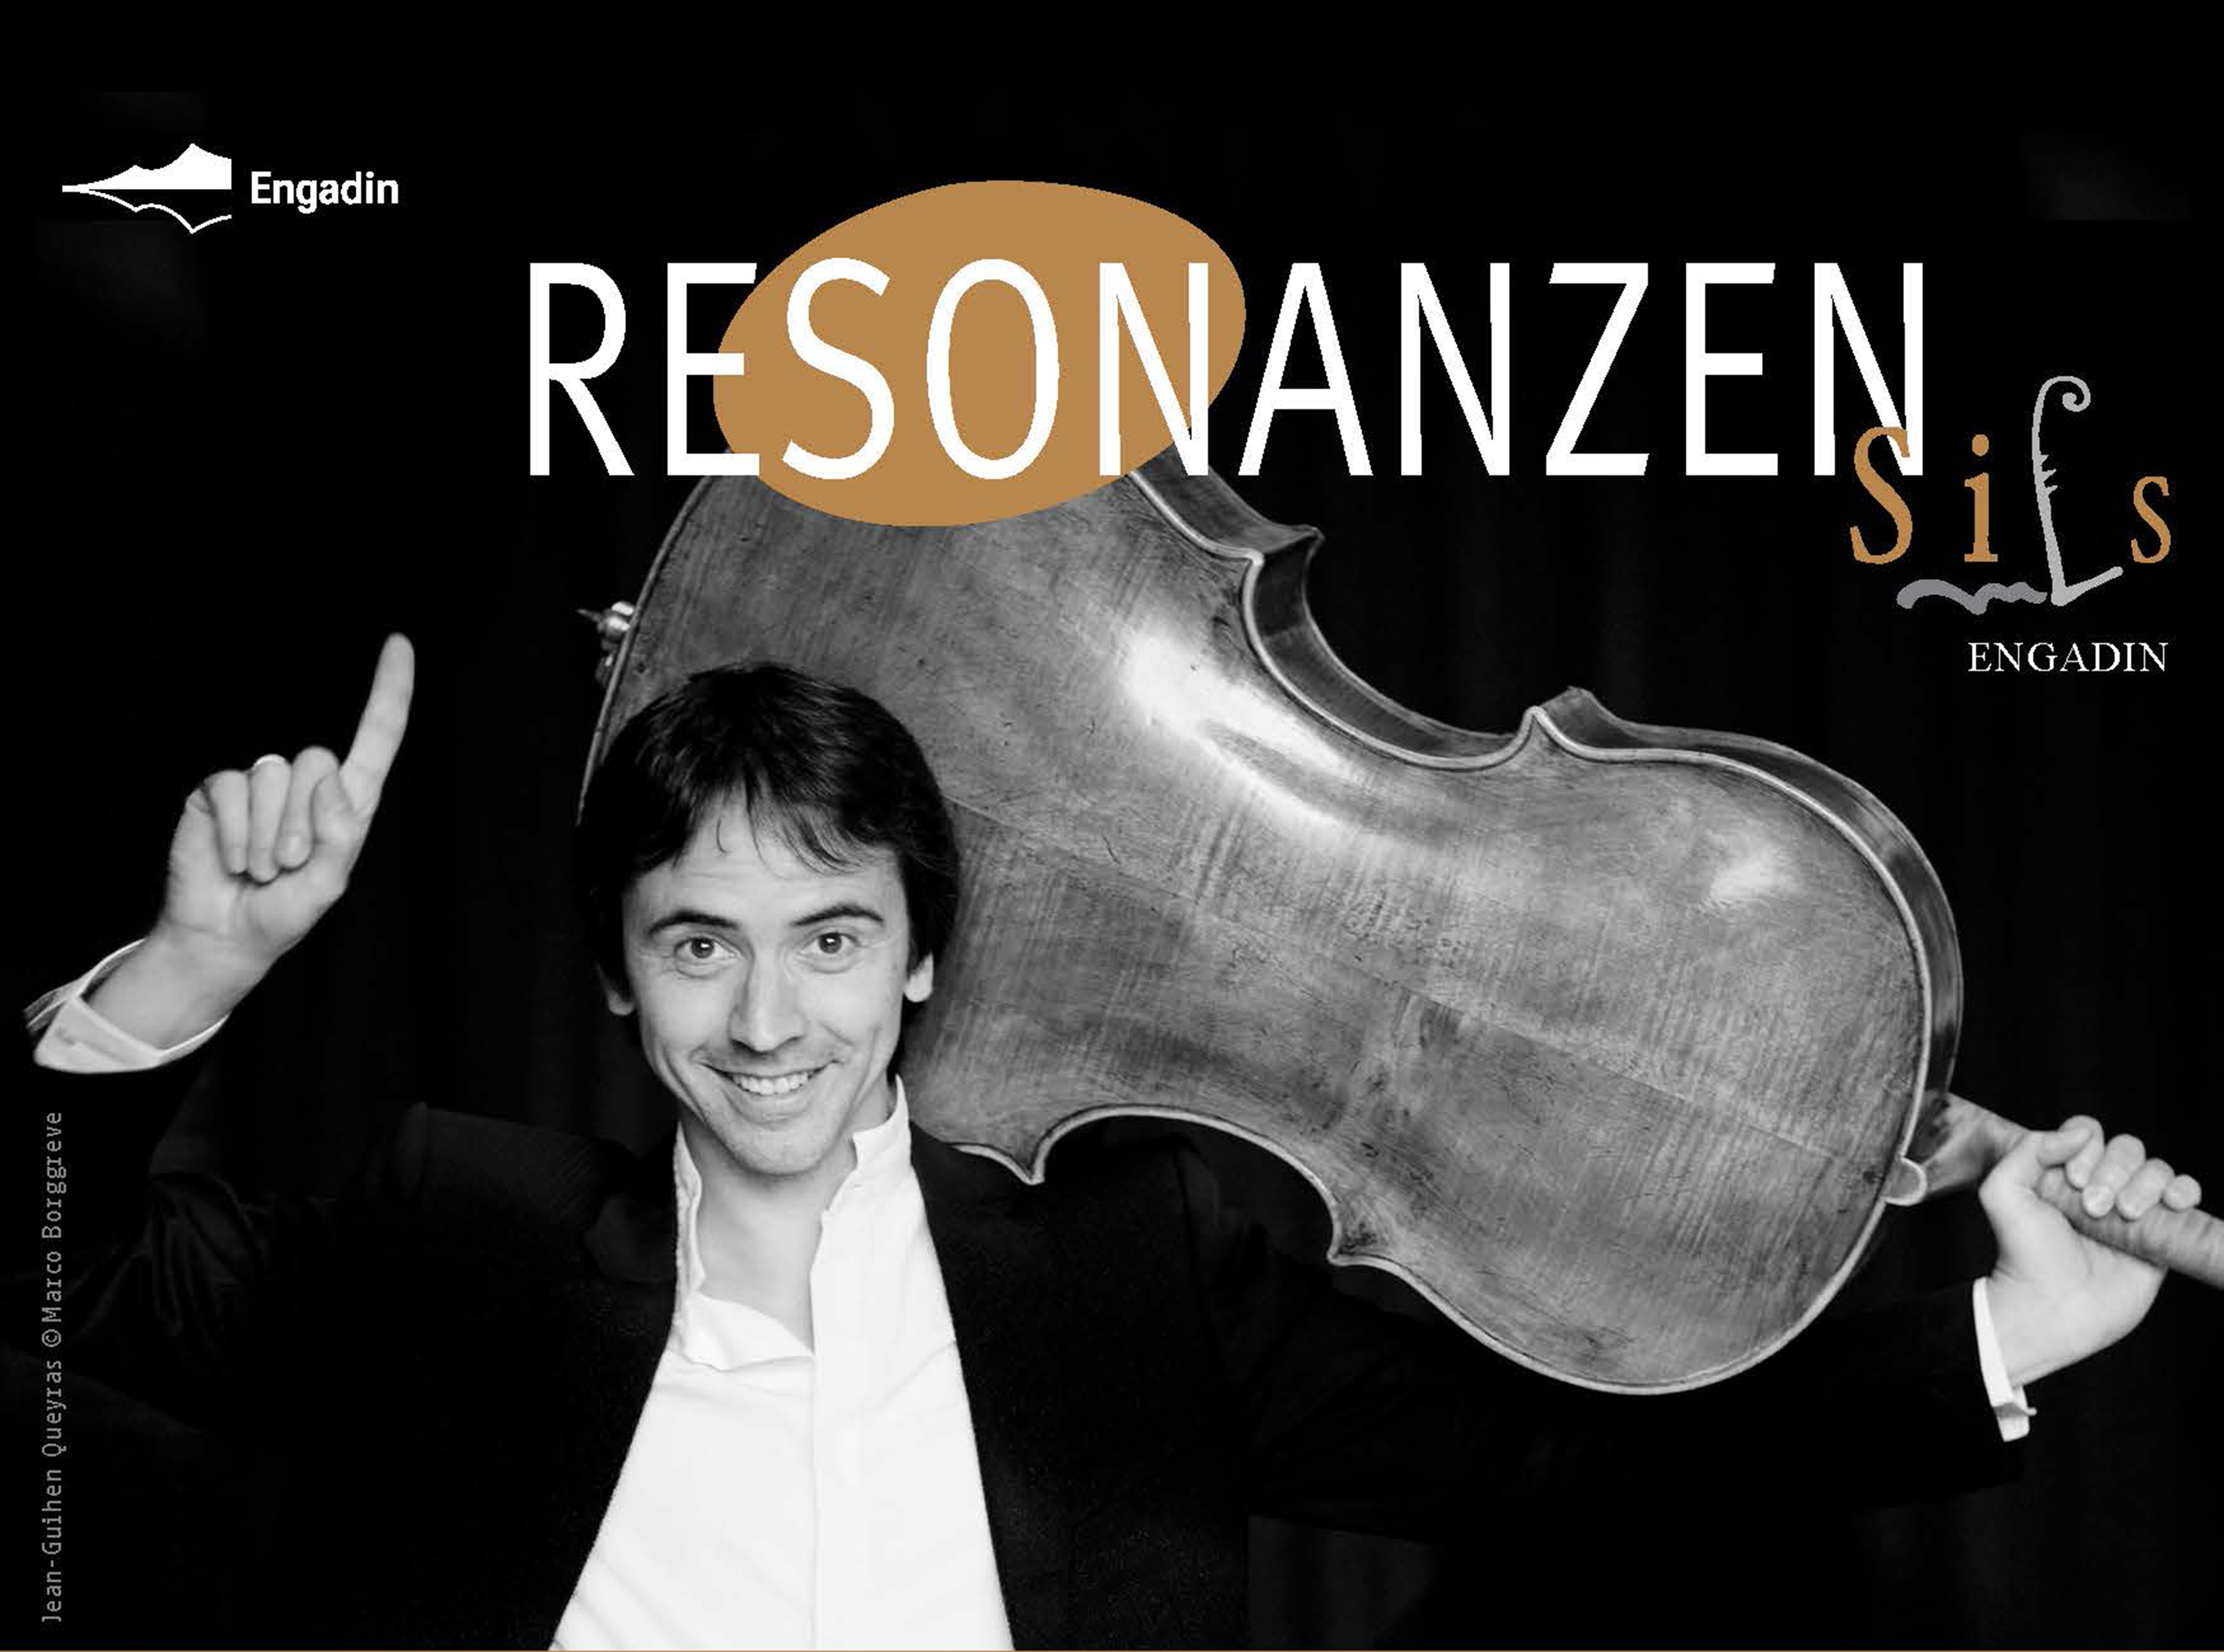 Resonanzen in Sils 2019: MythenEnsembleOrchestral